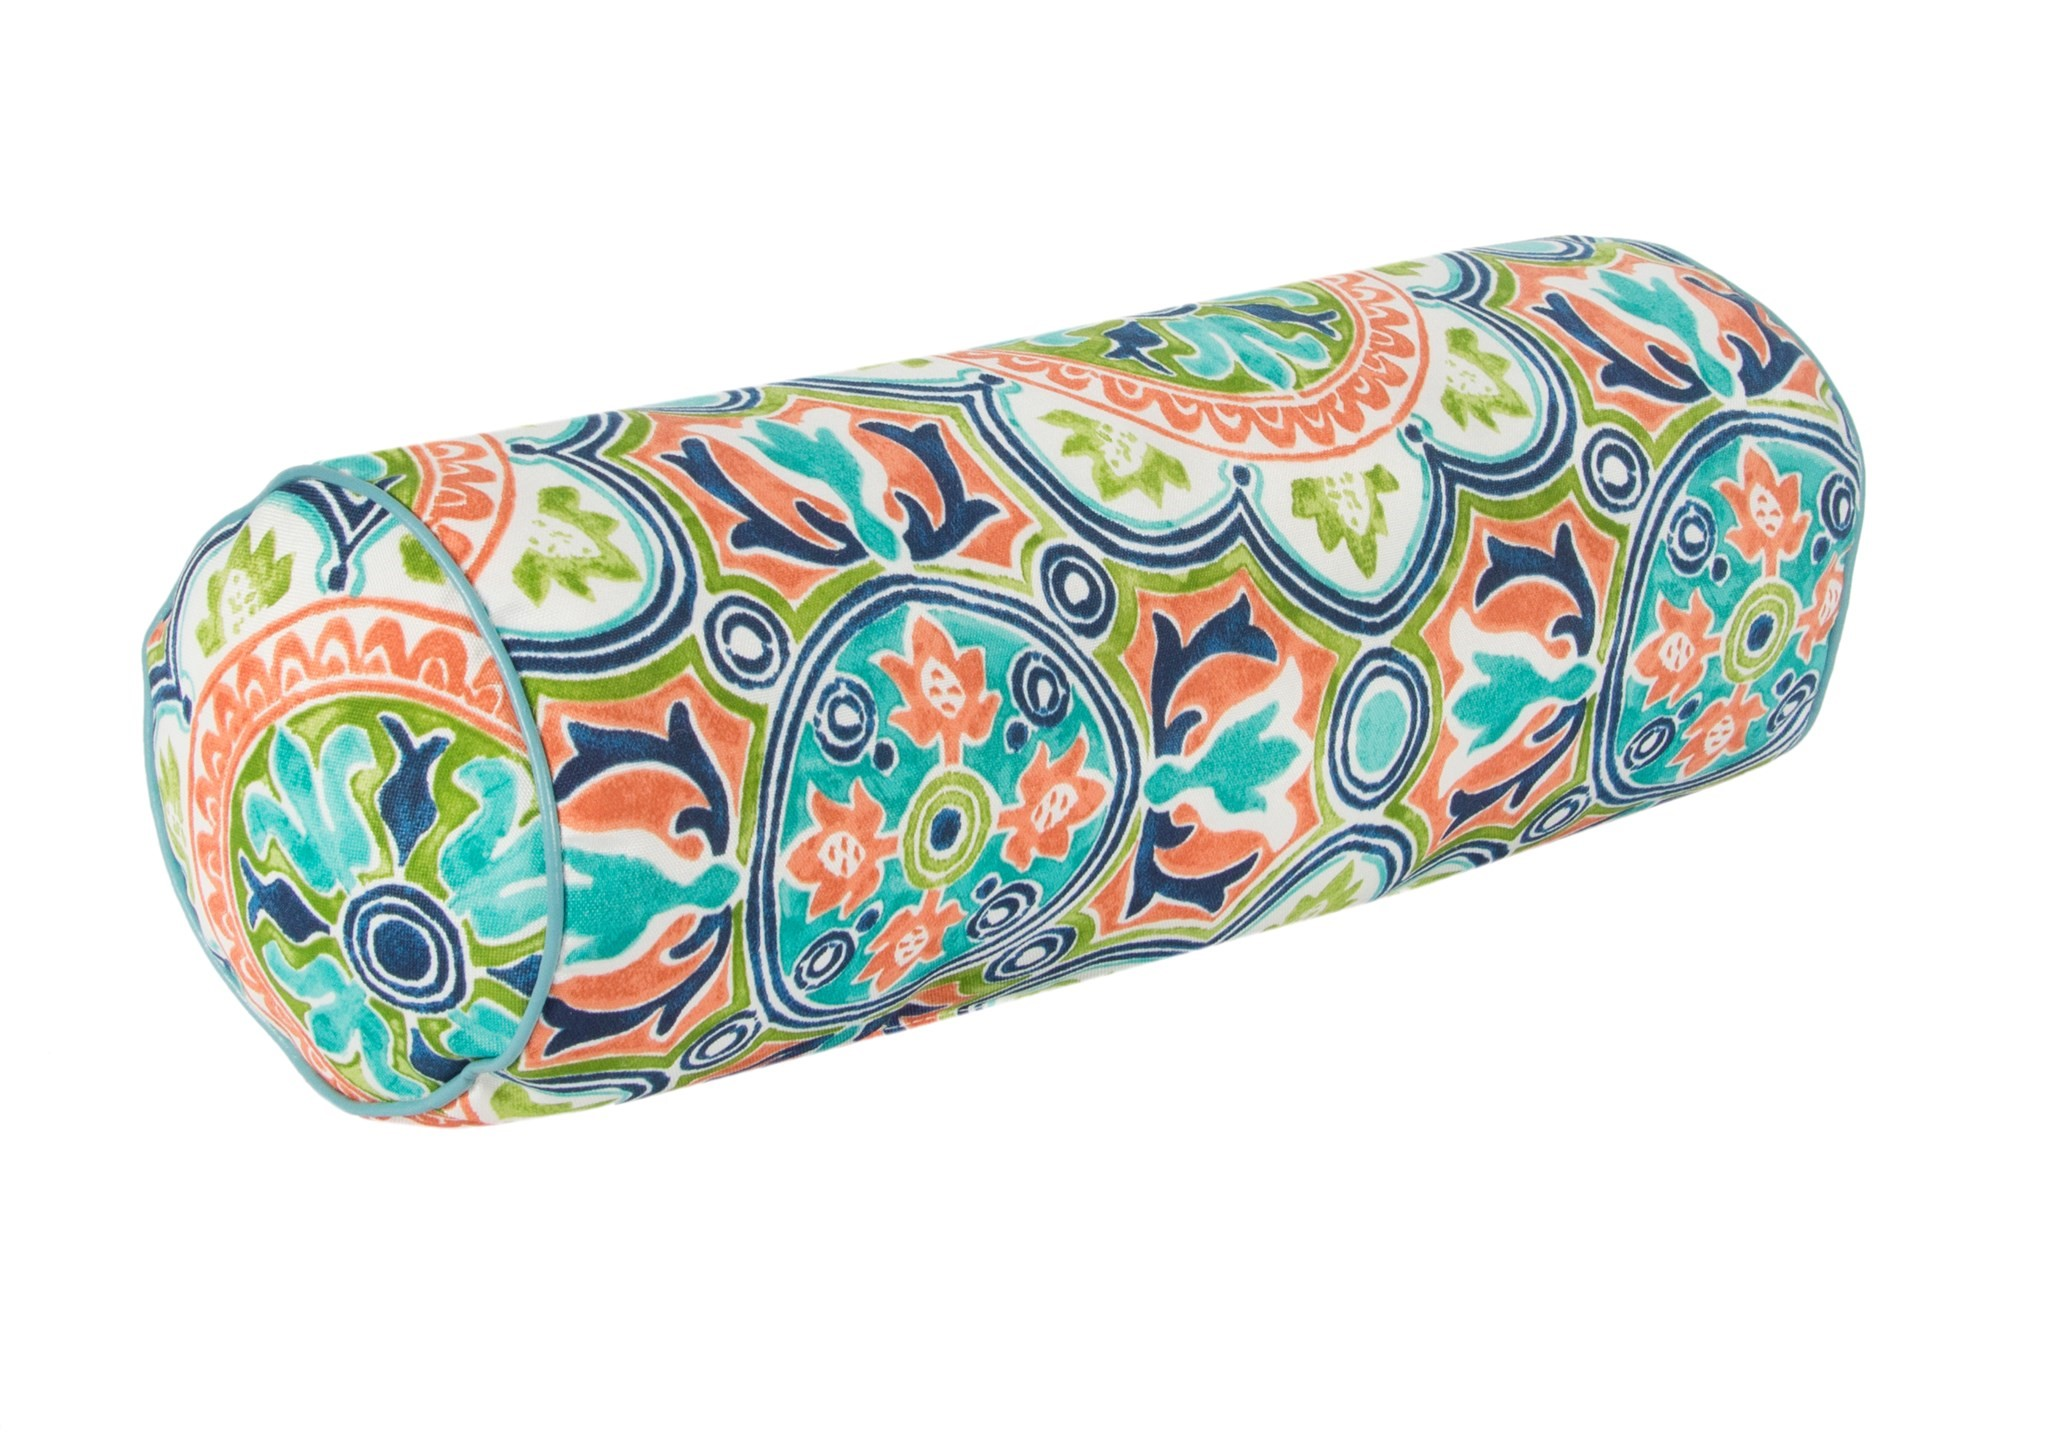 20x6.5 Bolster Outdoor Pillow by Ninety-Five & Co, Amanda's House Of Elegance  (Special Order Only - Minimum Qty 2)    ($42.95 each)